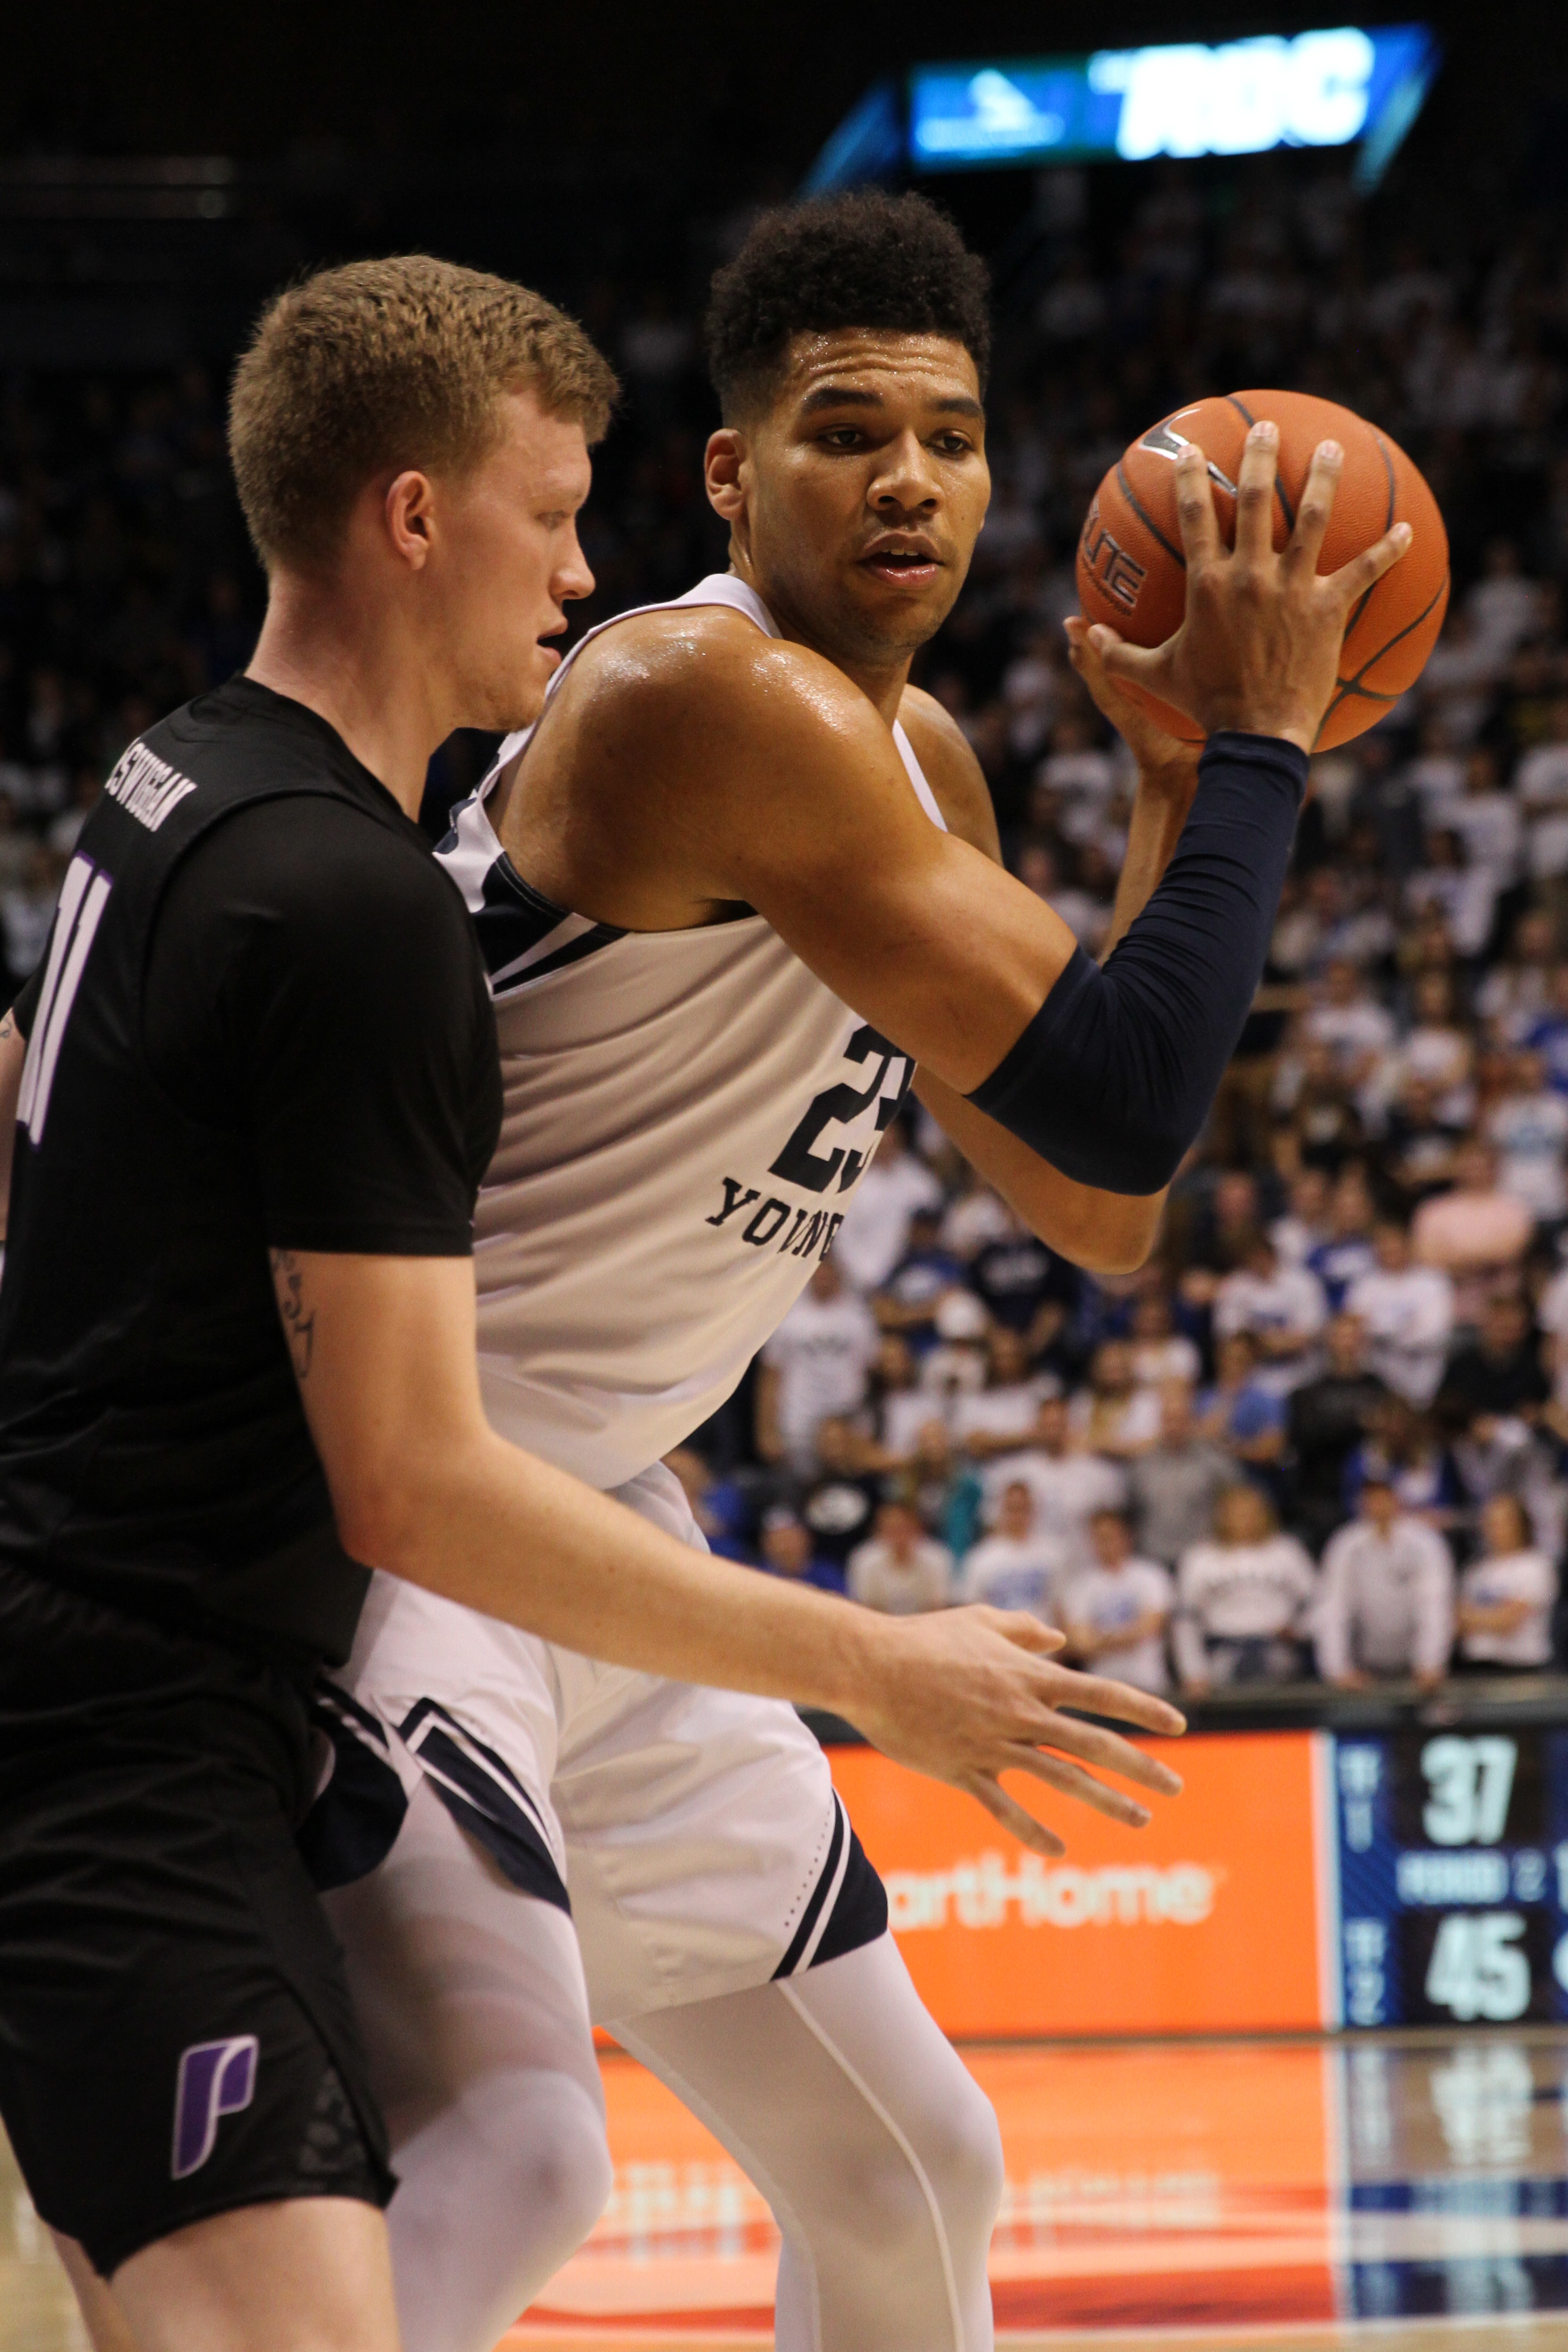 Looking ahead to BYU men's 2019-20 basketball roster - The Daily